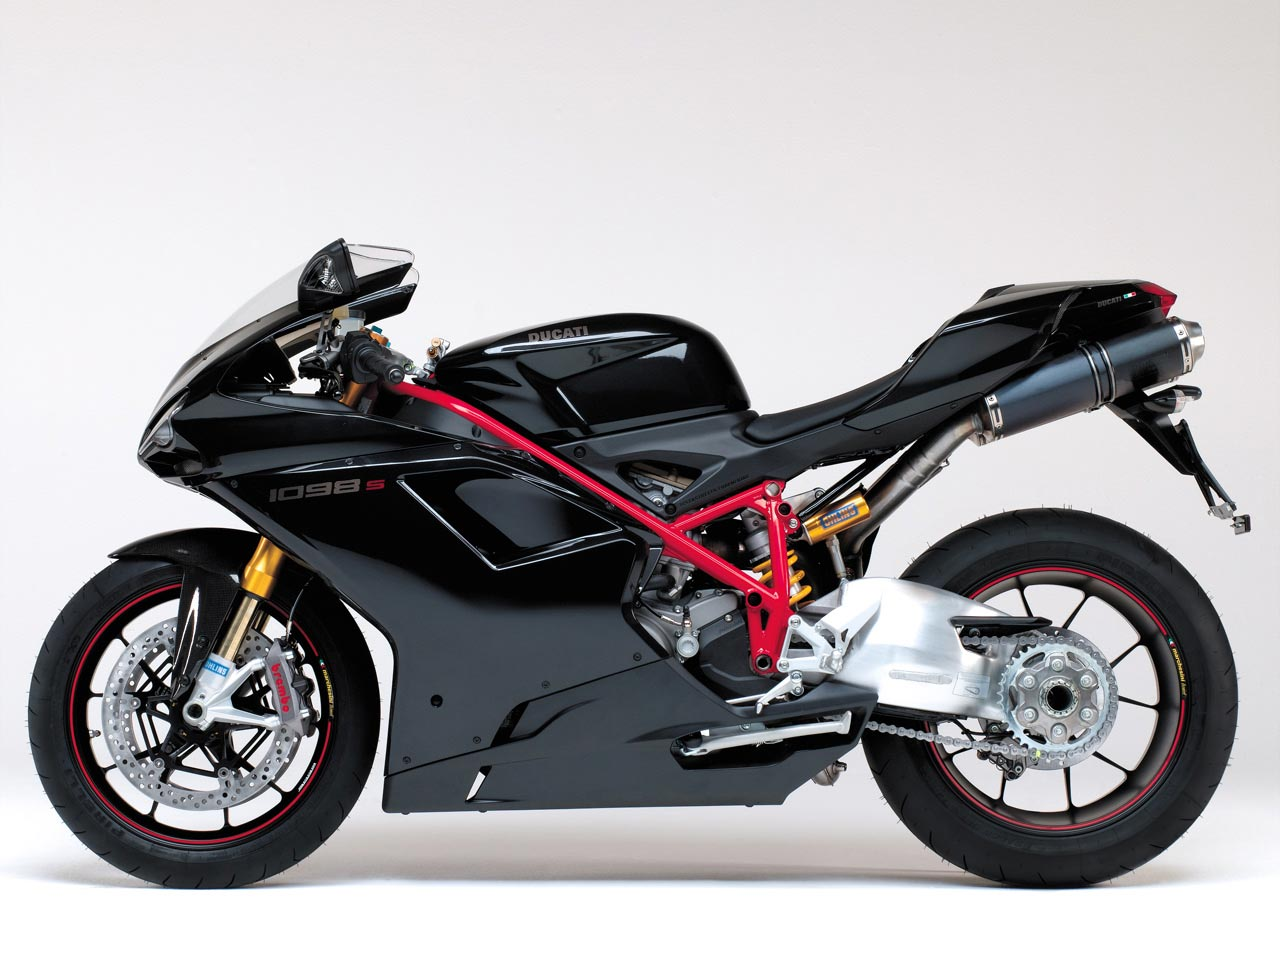 2007 ducati 1098s superbike. Black Bedroom Furniture Sets. Home Design Ideas